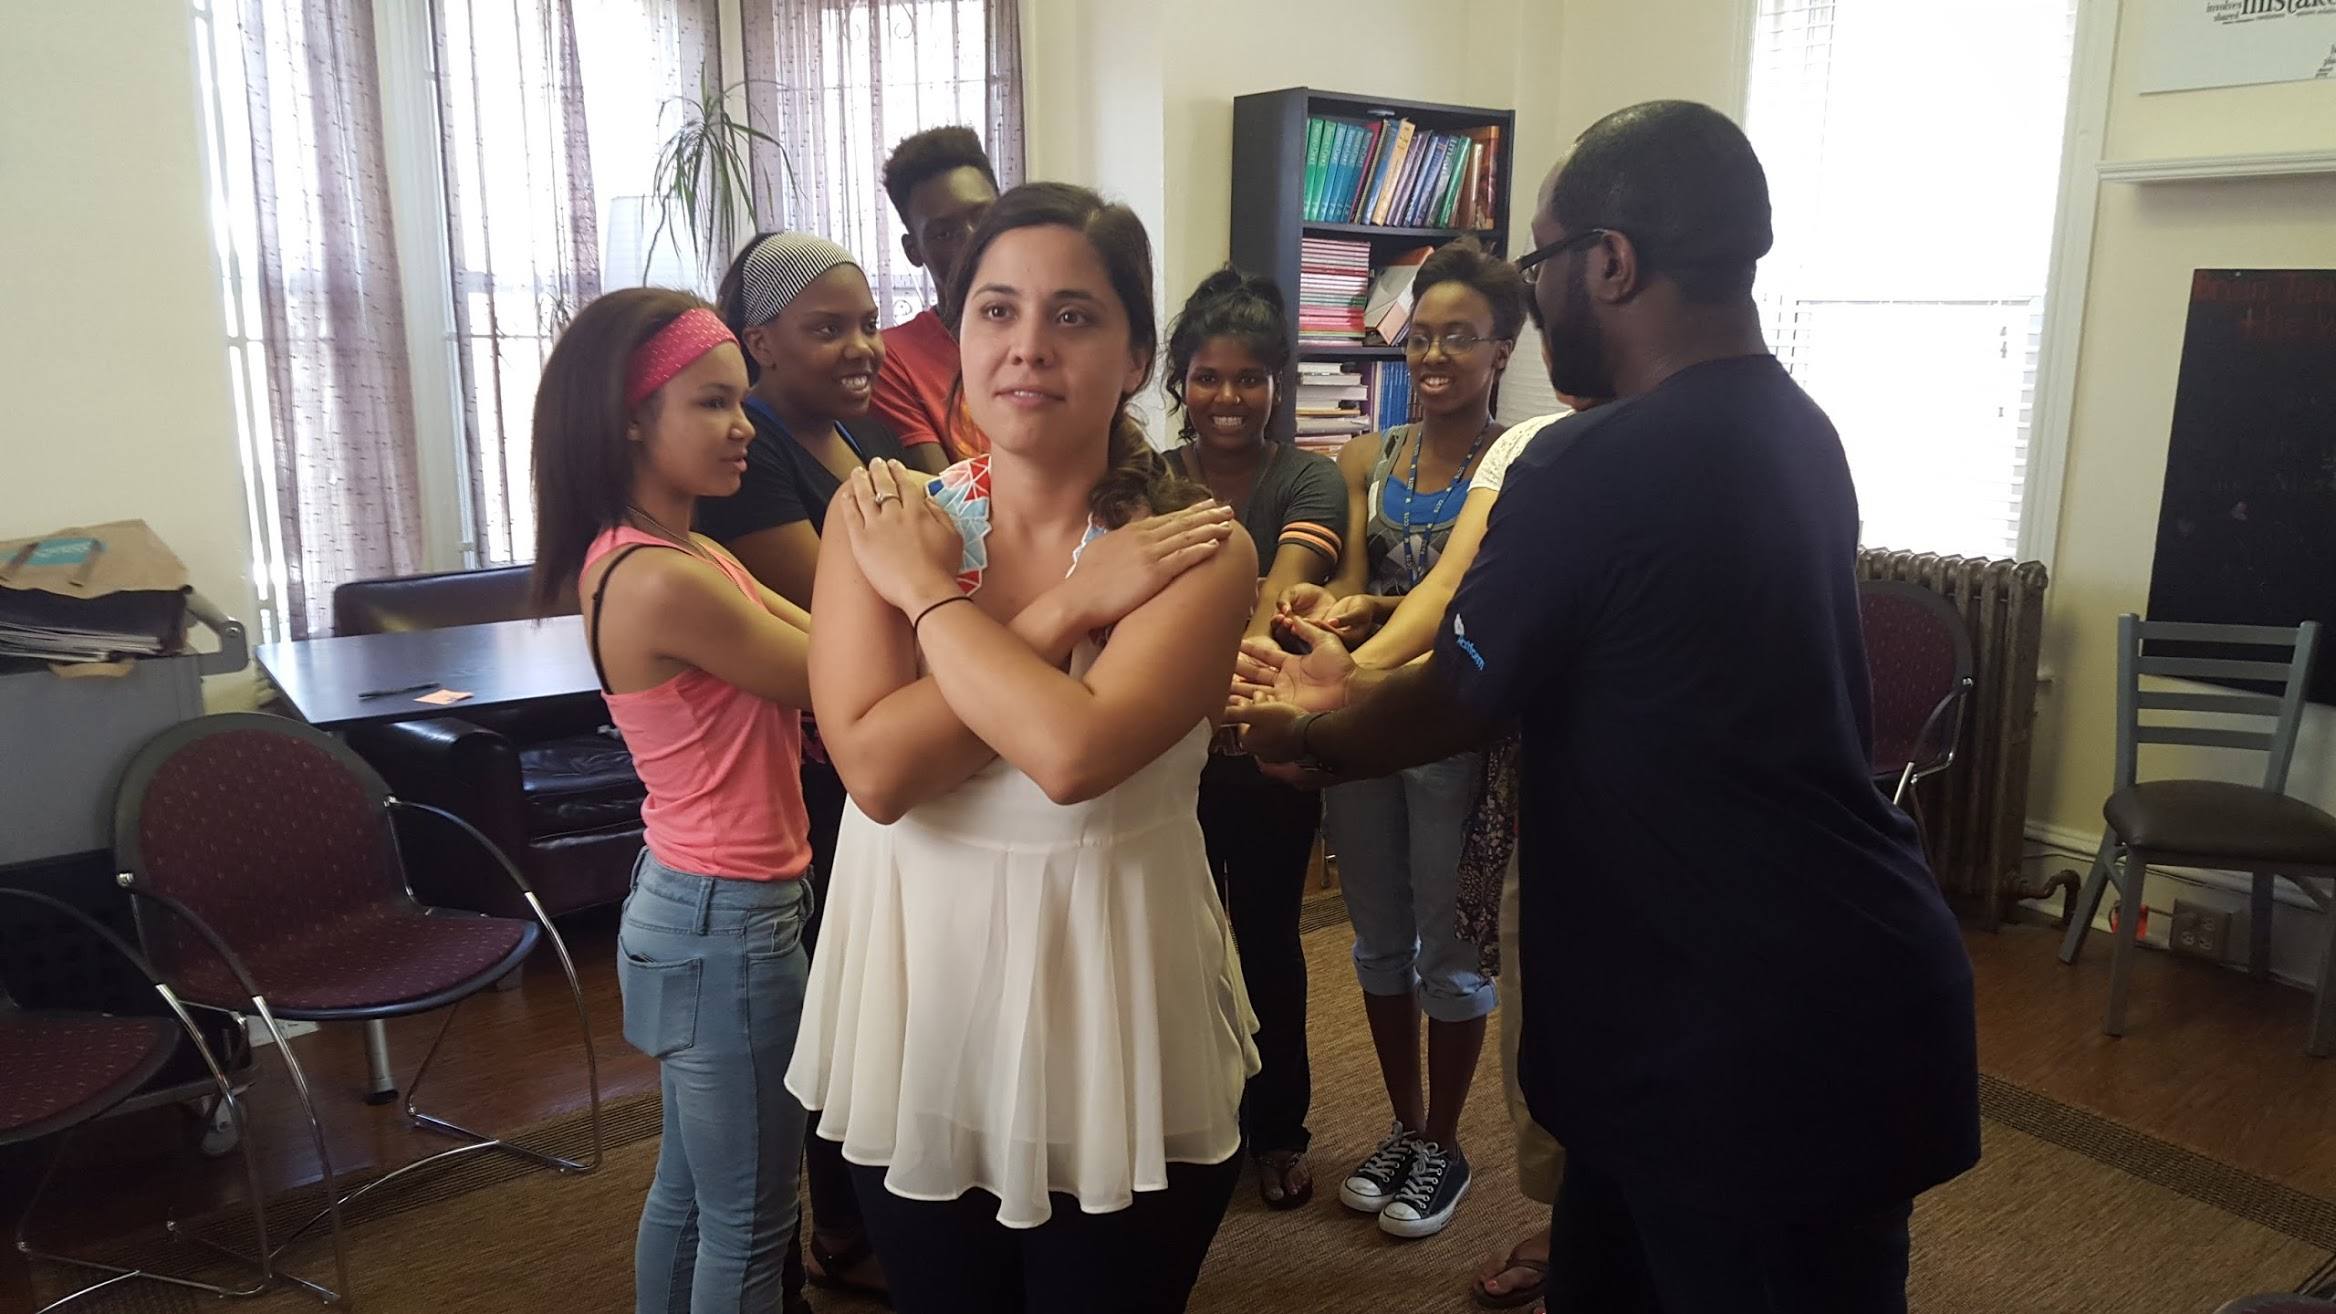 A member of a New Jersey based advocacy group crosses her hands over her chest and her fellow group members line up behind her with their arms extended. This is a trust fall.